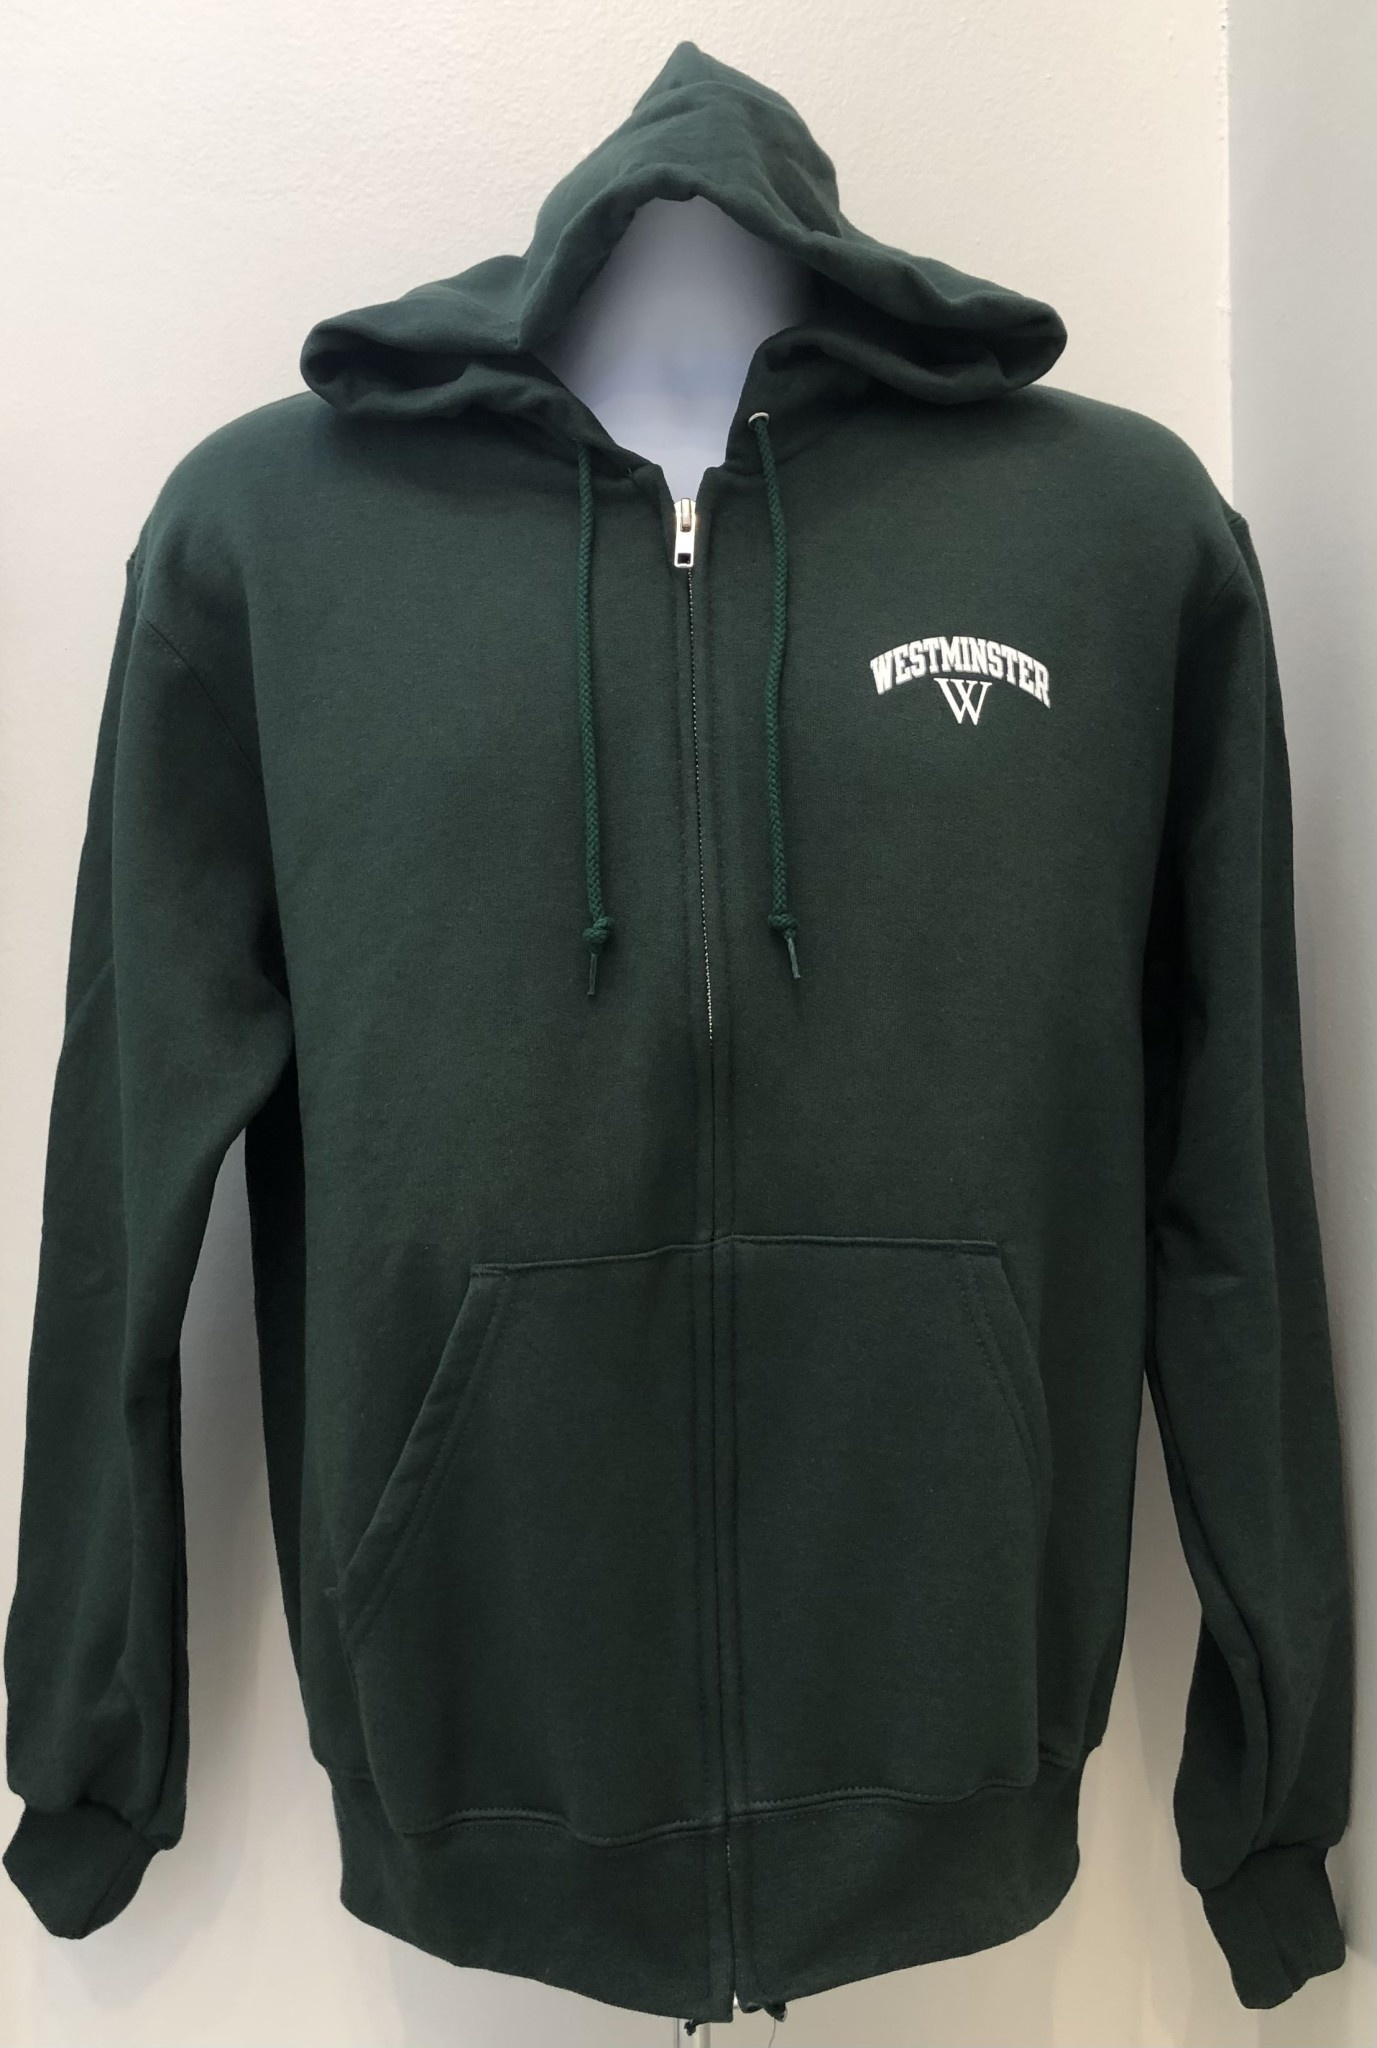 Champion Jacket: Champion Eco Fleece Green Full Zip Hoody Westminster over W